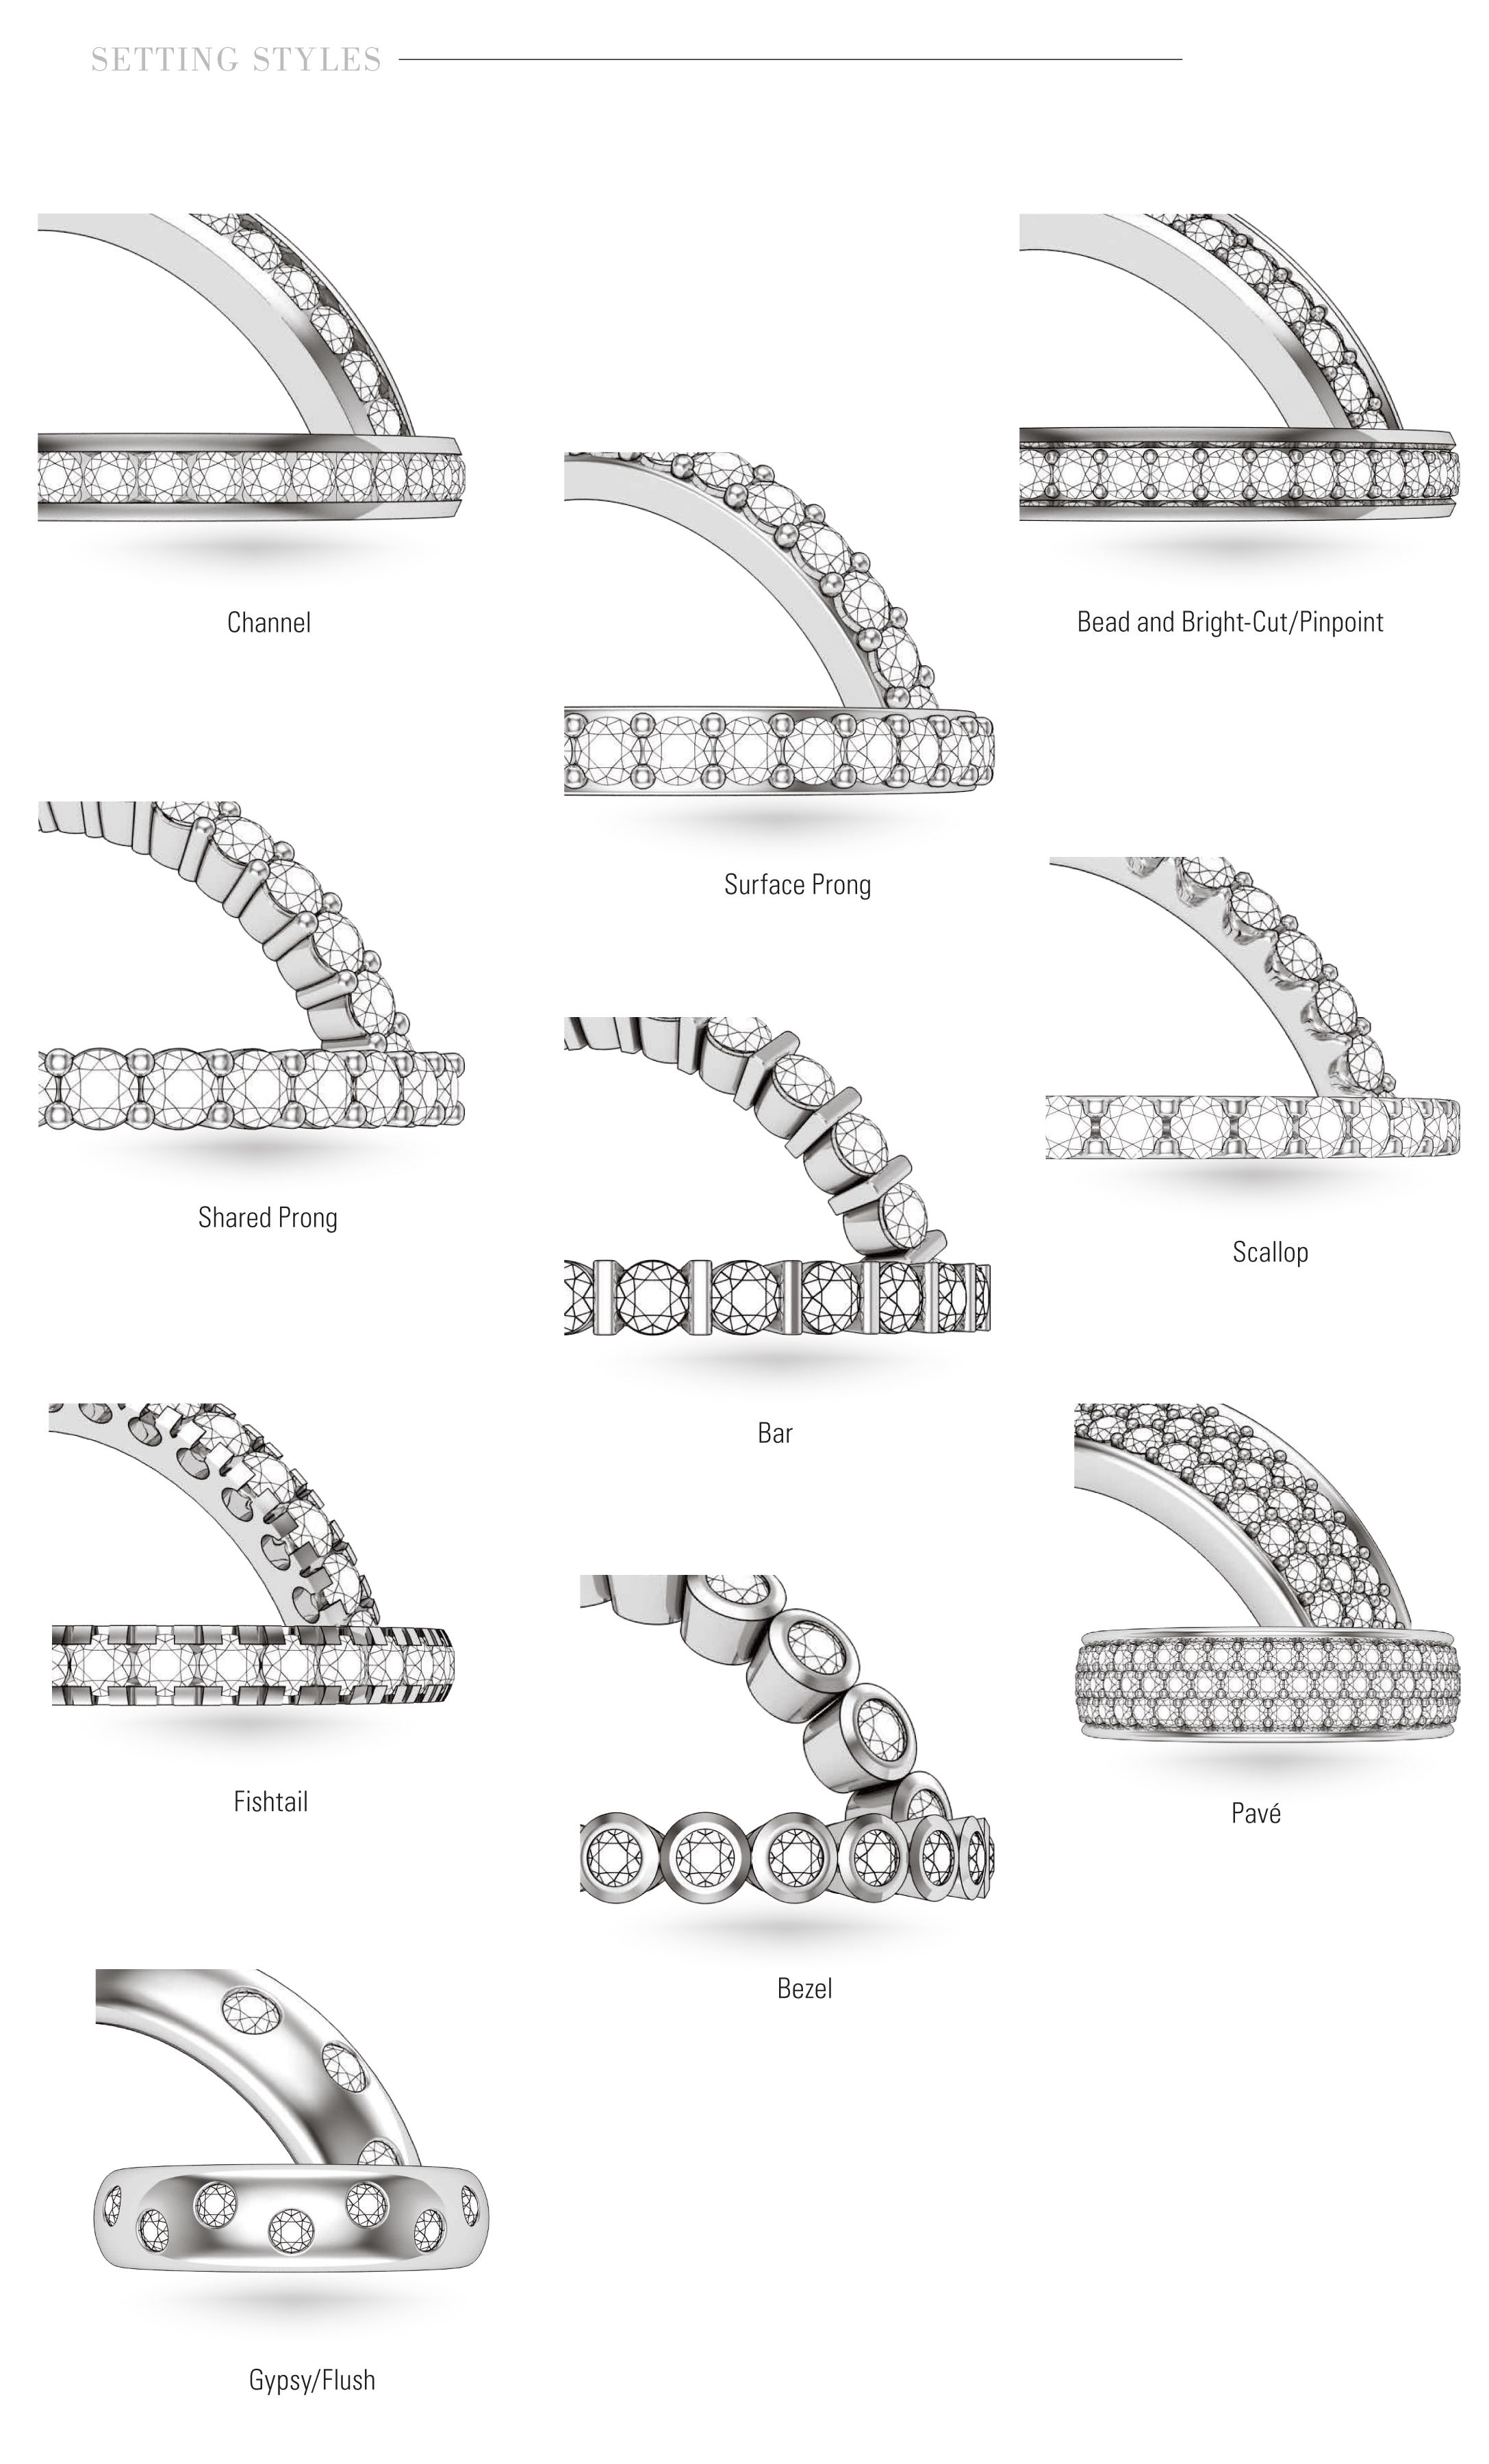 gallery beautiful blog guide evesaddiction attachment wedding jewelry full types different of new style com view all fall rings